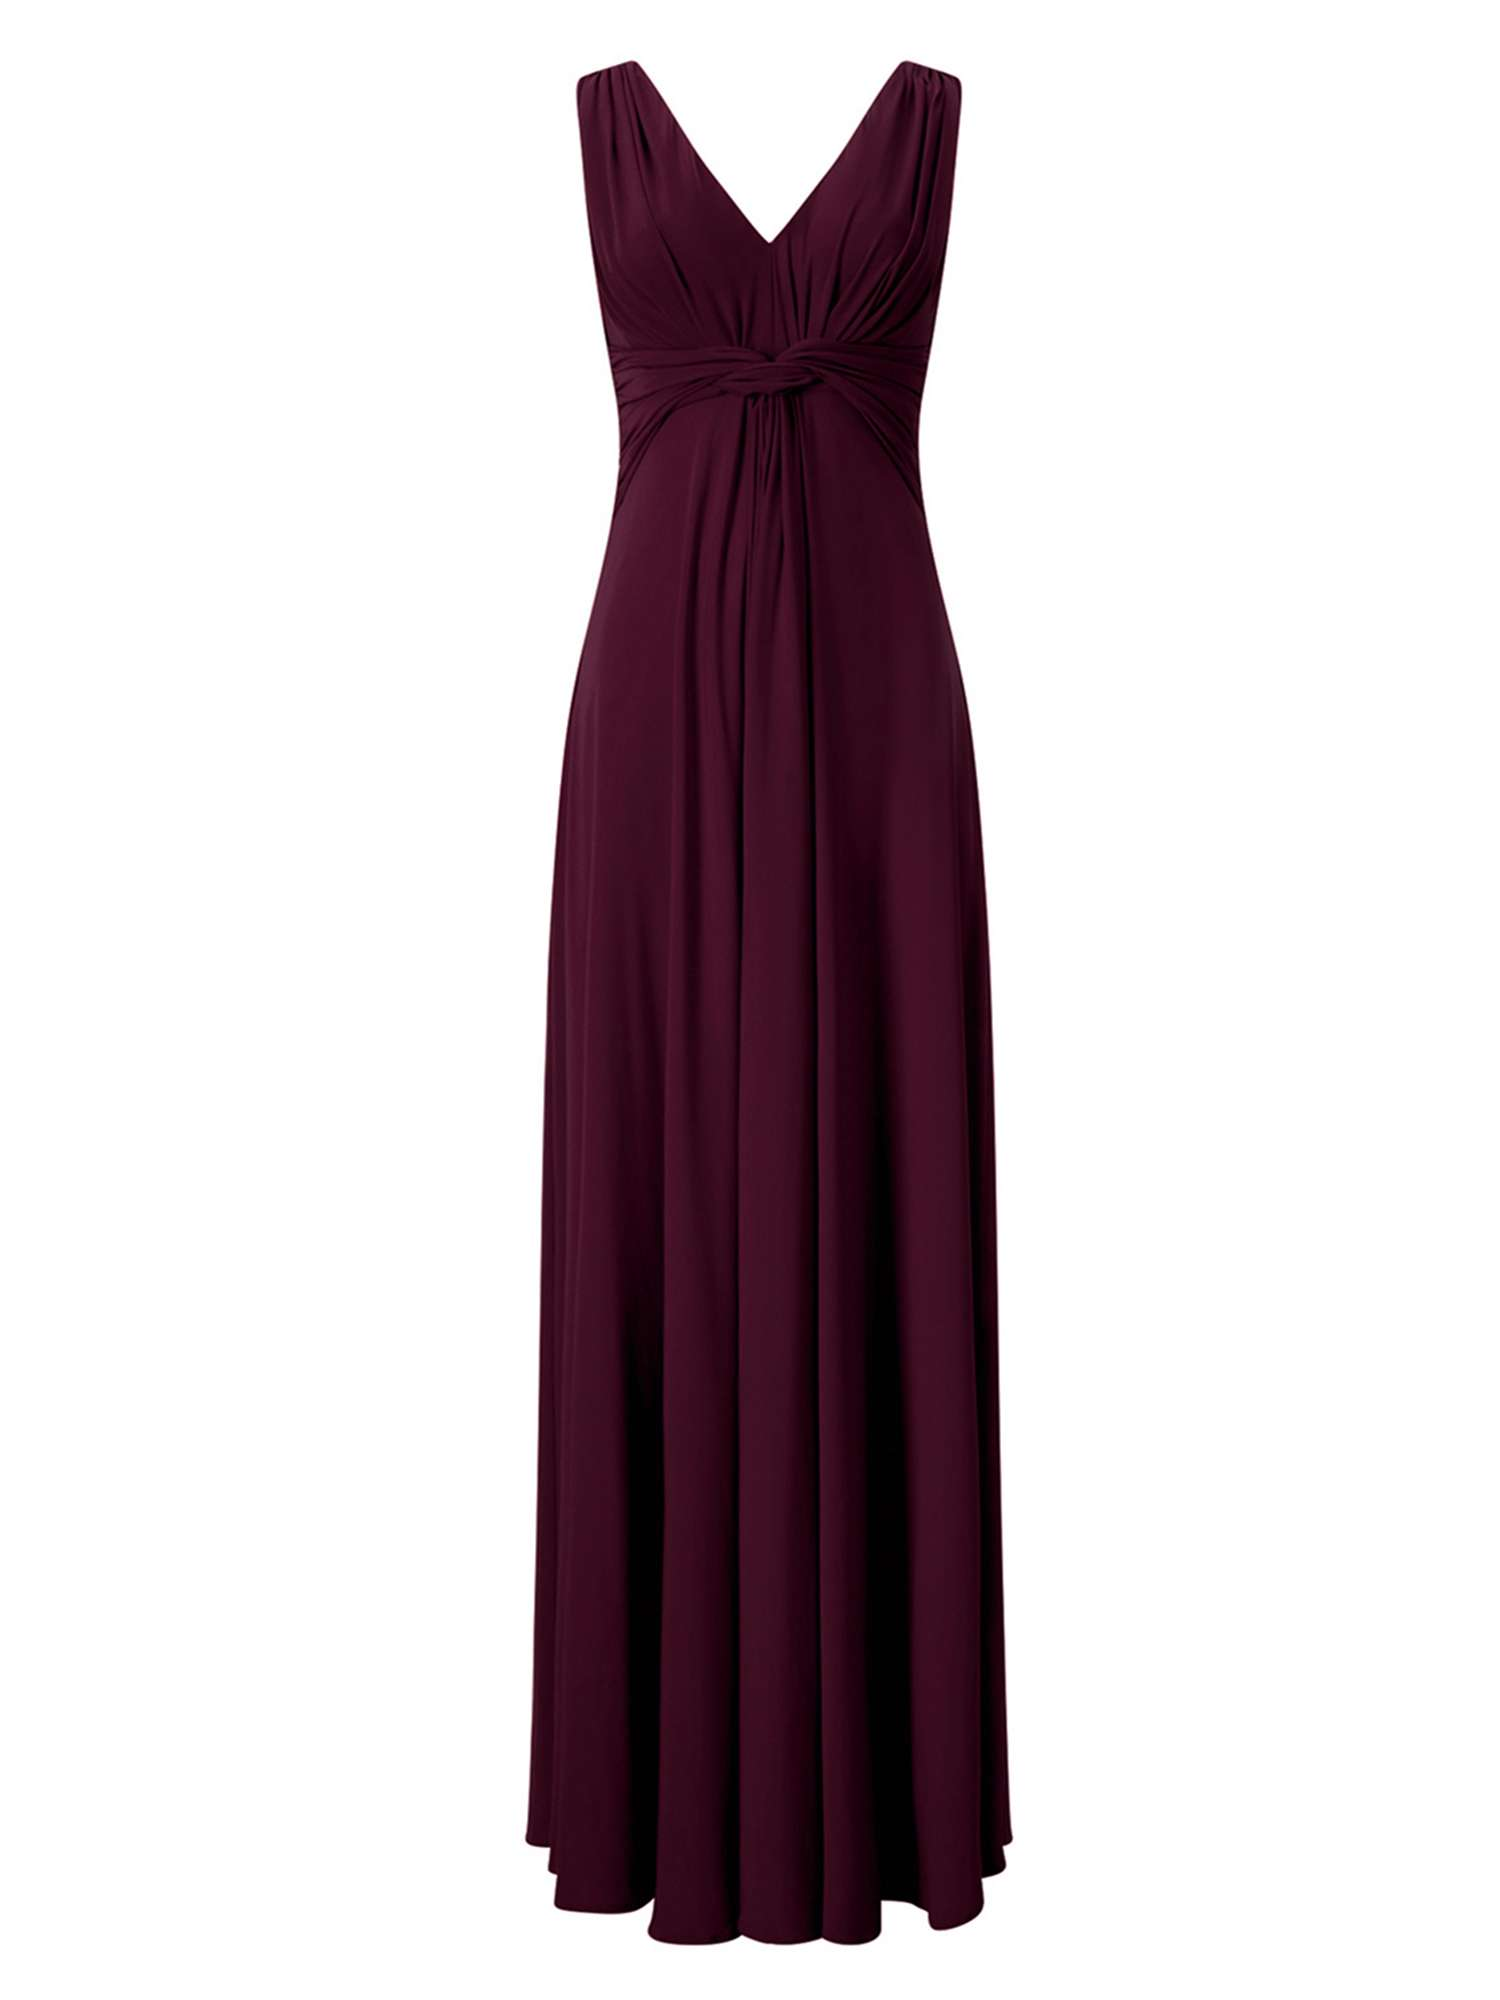 Red Phase Eight Dresses | Shop Dresses - House of Fraser